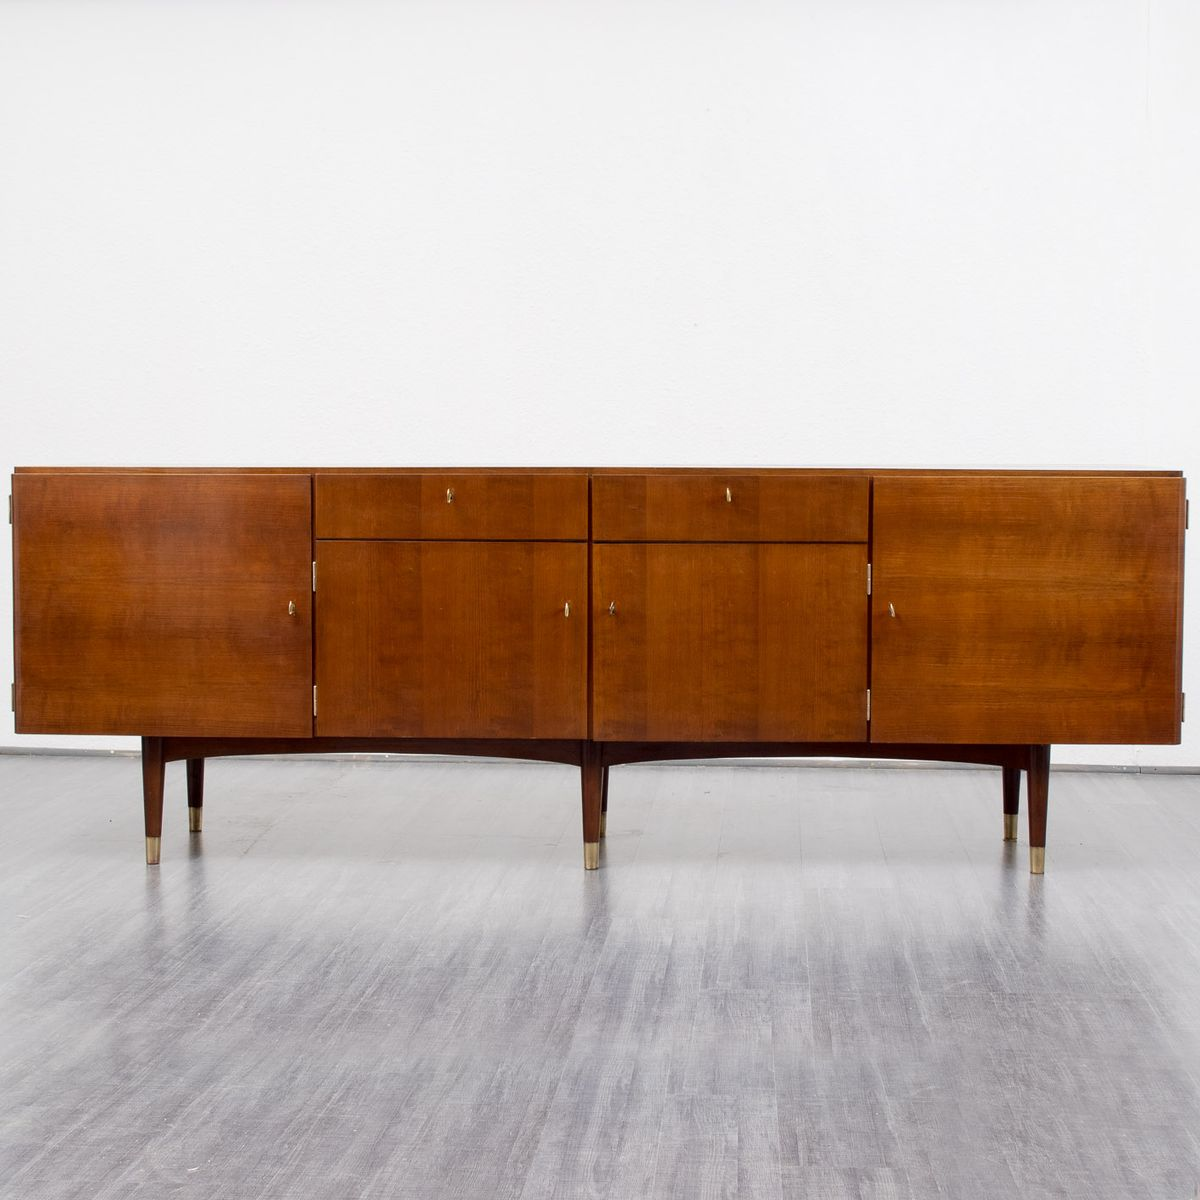 Xl vintage sideboard 1950s for sale at pamono for Sideboard xl